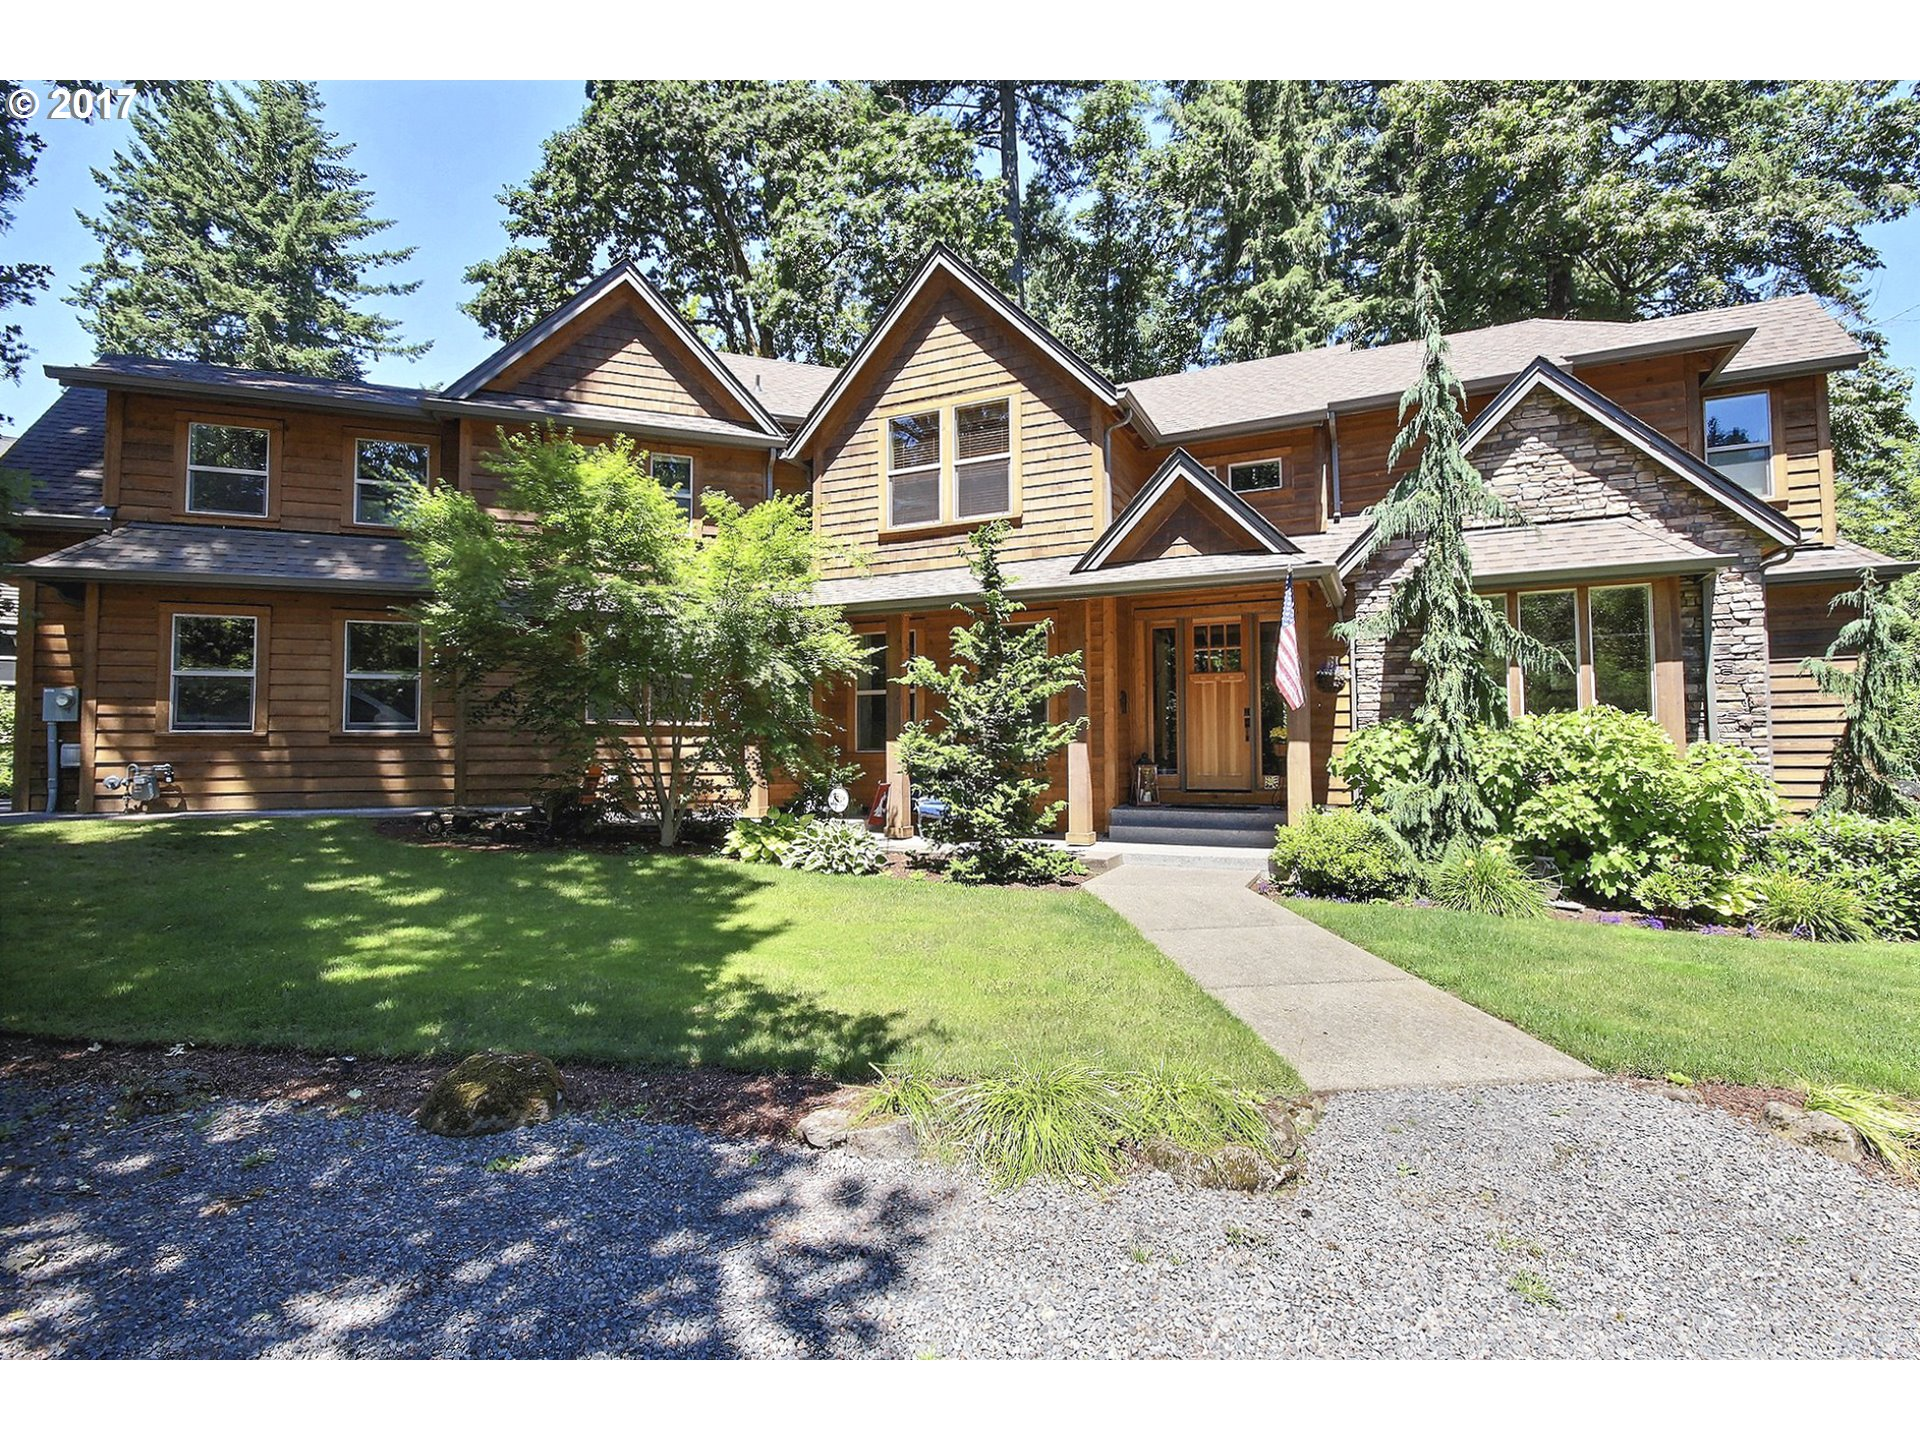 3623 EENA RD, Lake Oswego, OR 97034